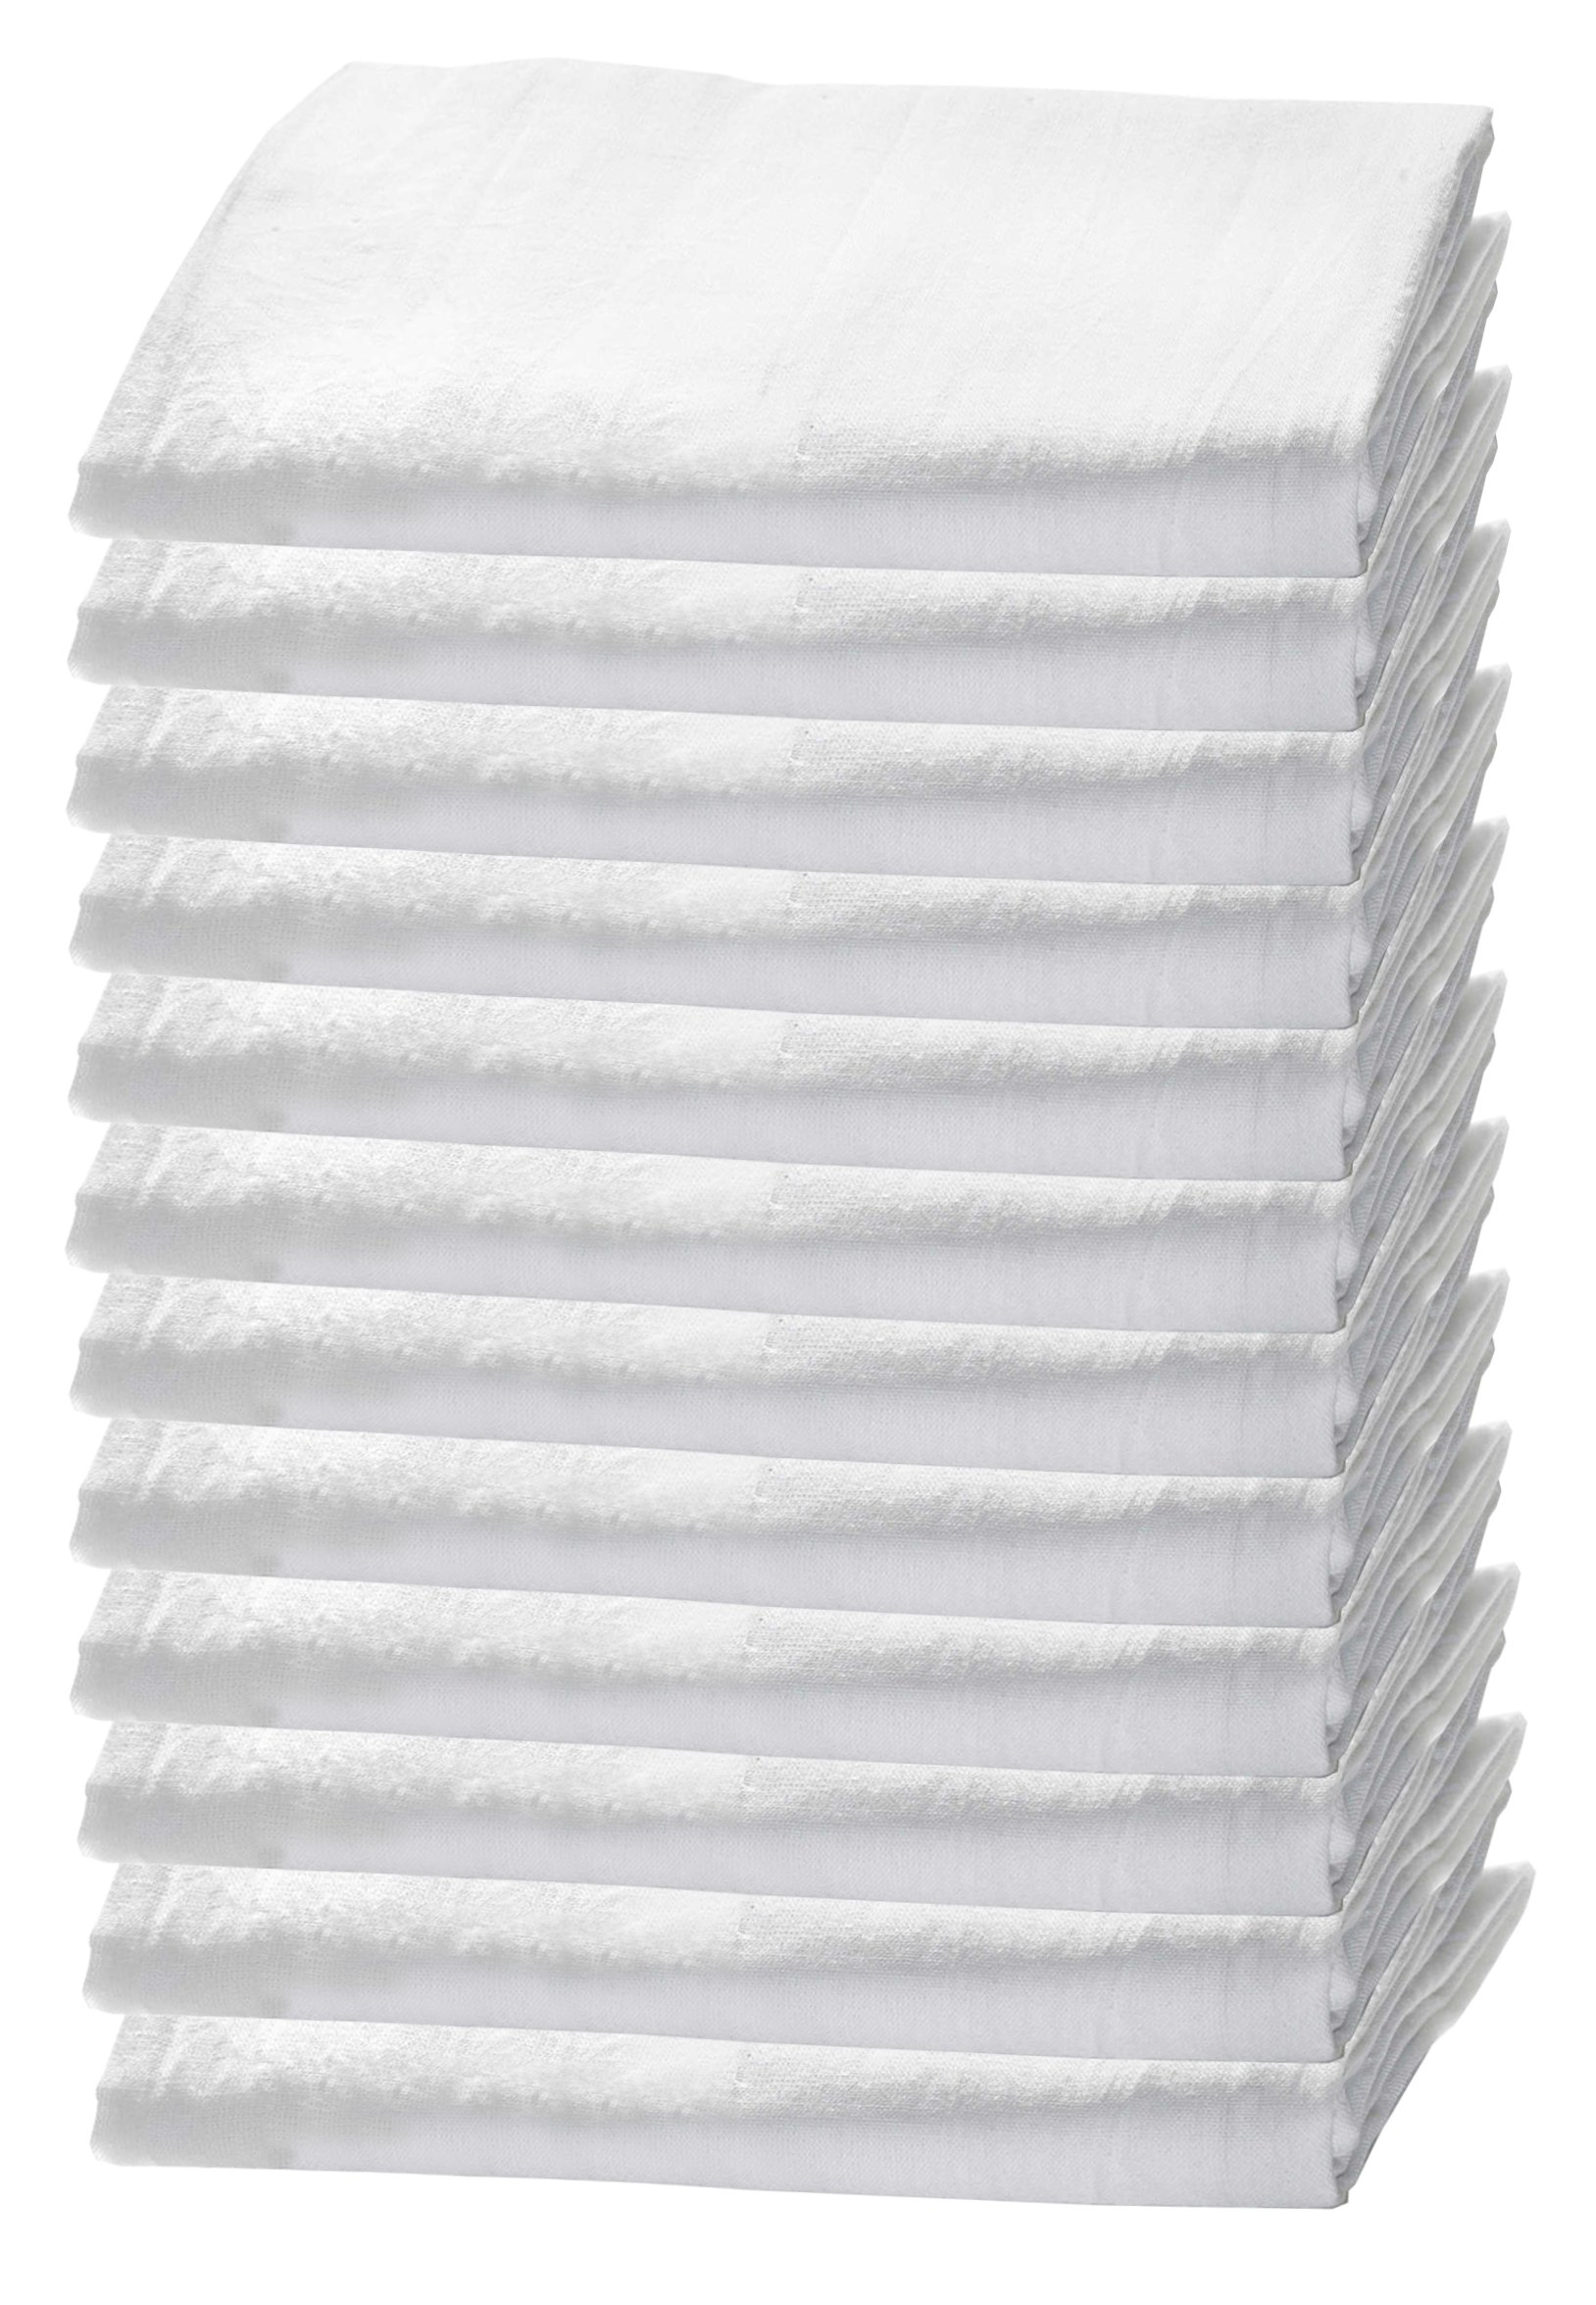 HomeLabels Kitchen 12 Pack Flour-Sack Towels, 100% Pure Rung Spin Cotton, Hand Towels, Multi-Purpose, Highly Absorbent by HomeLabels